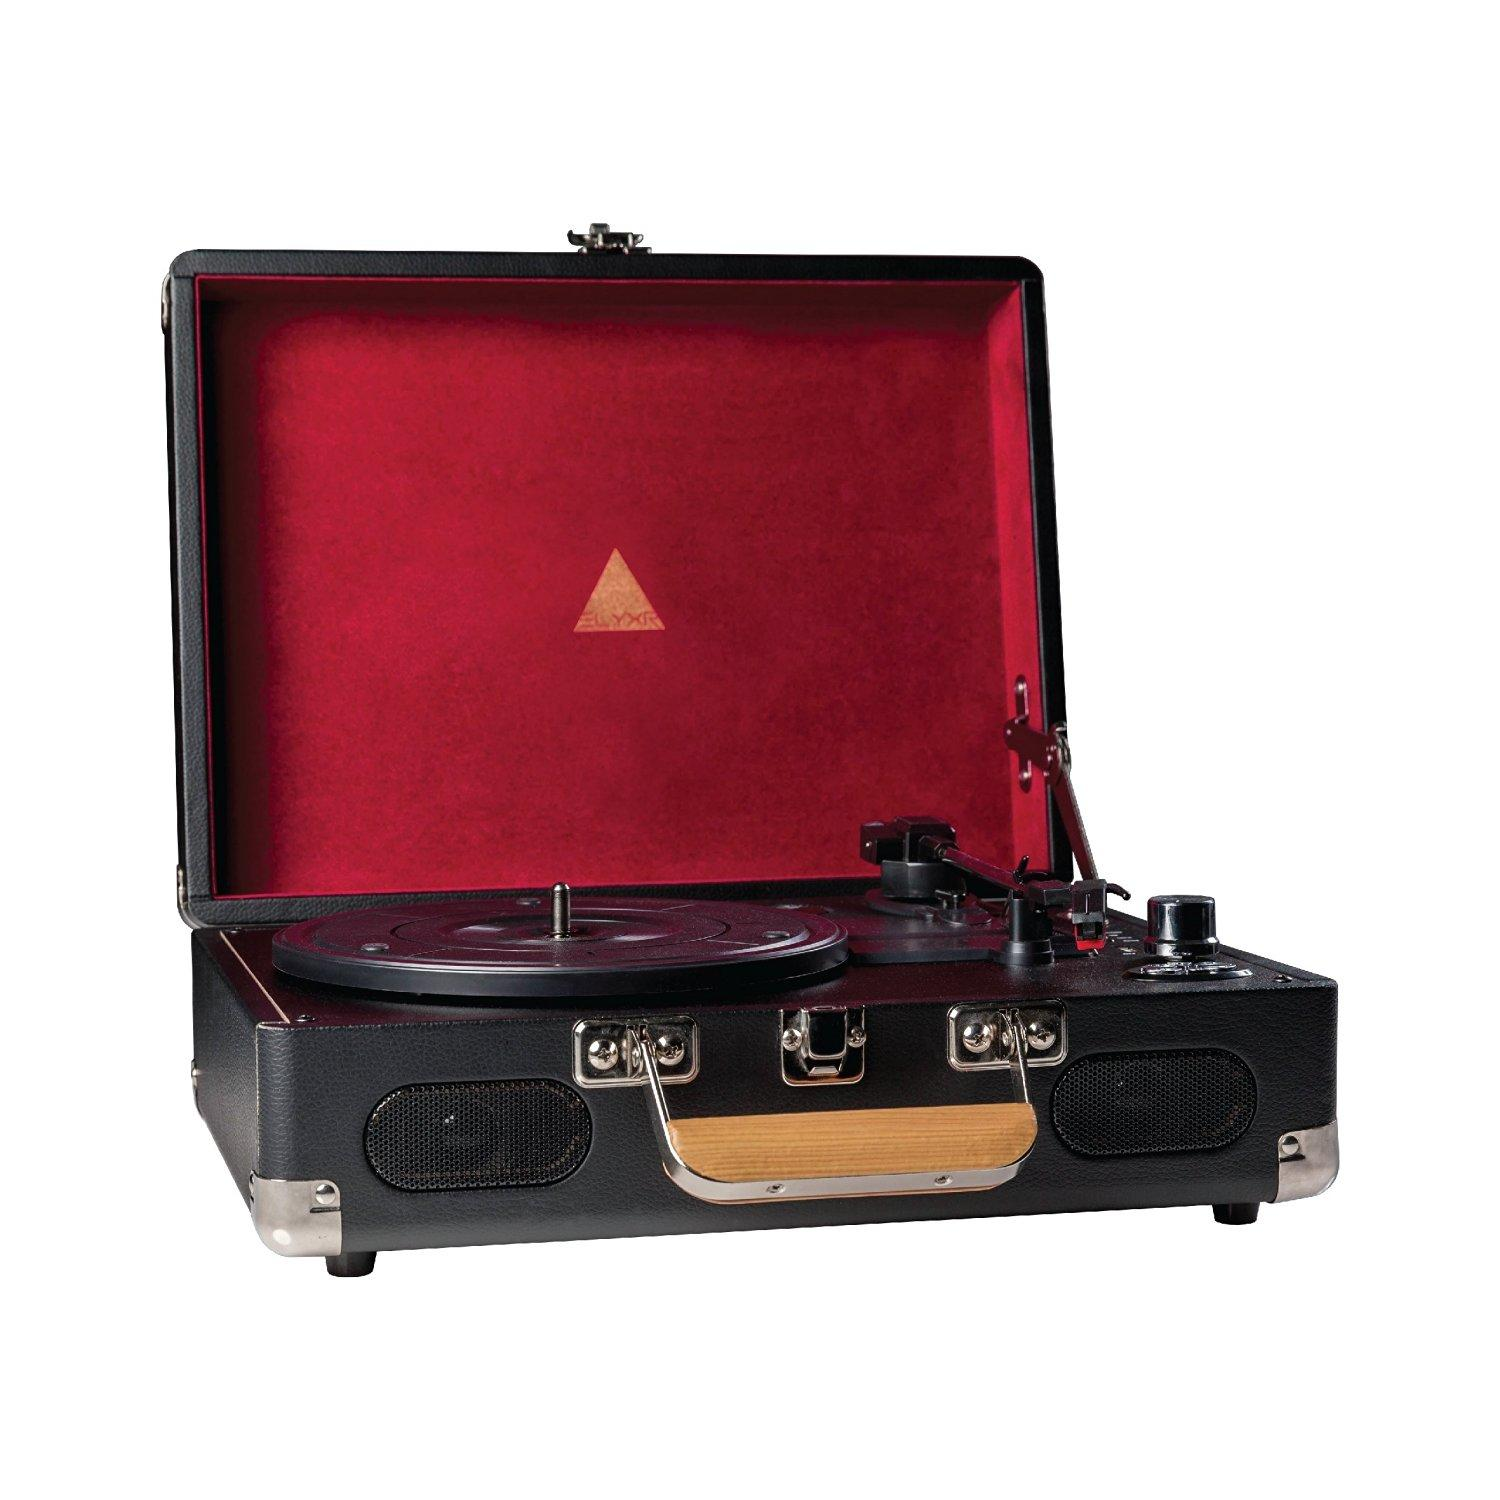 Elyxr Revolution Vinyl Player Black and Burgundy